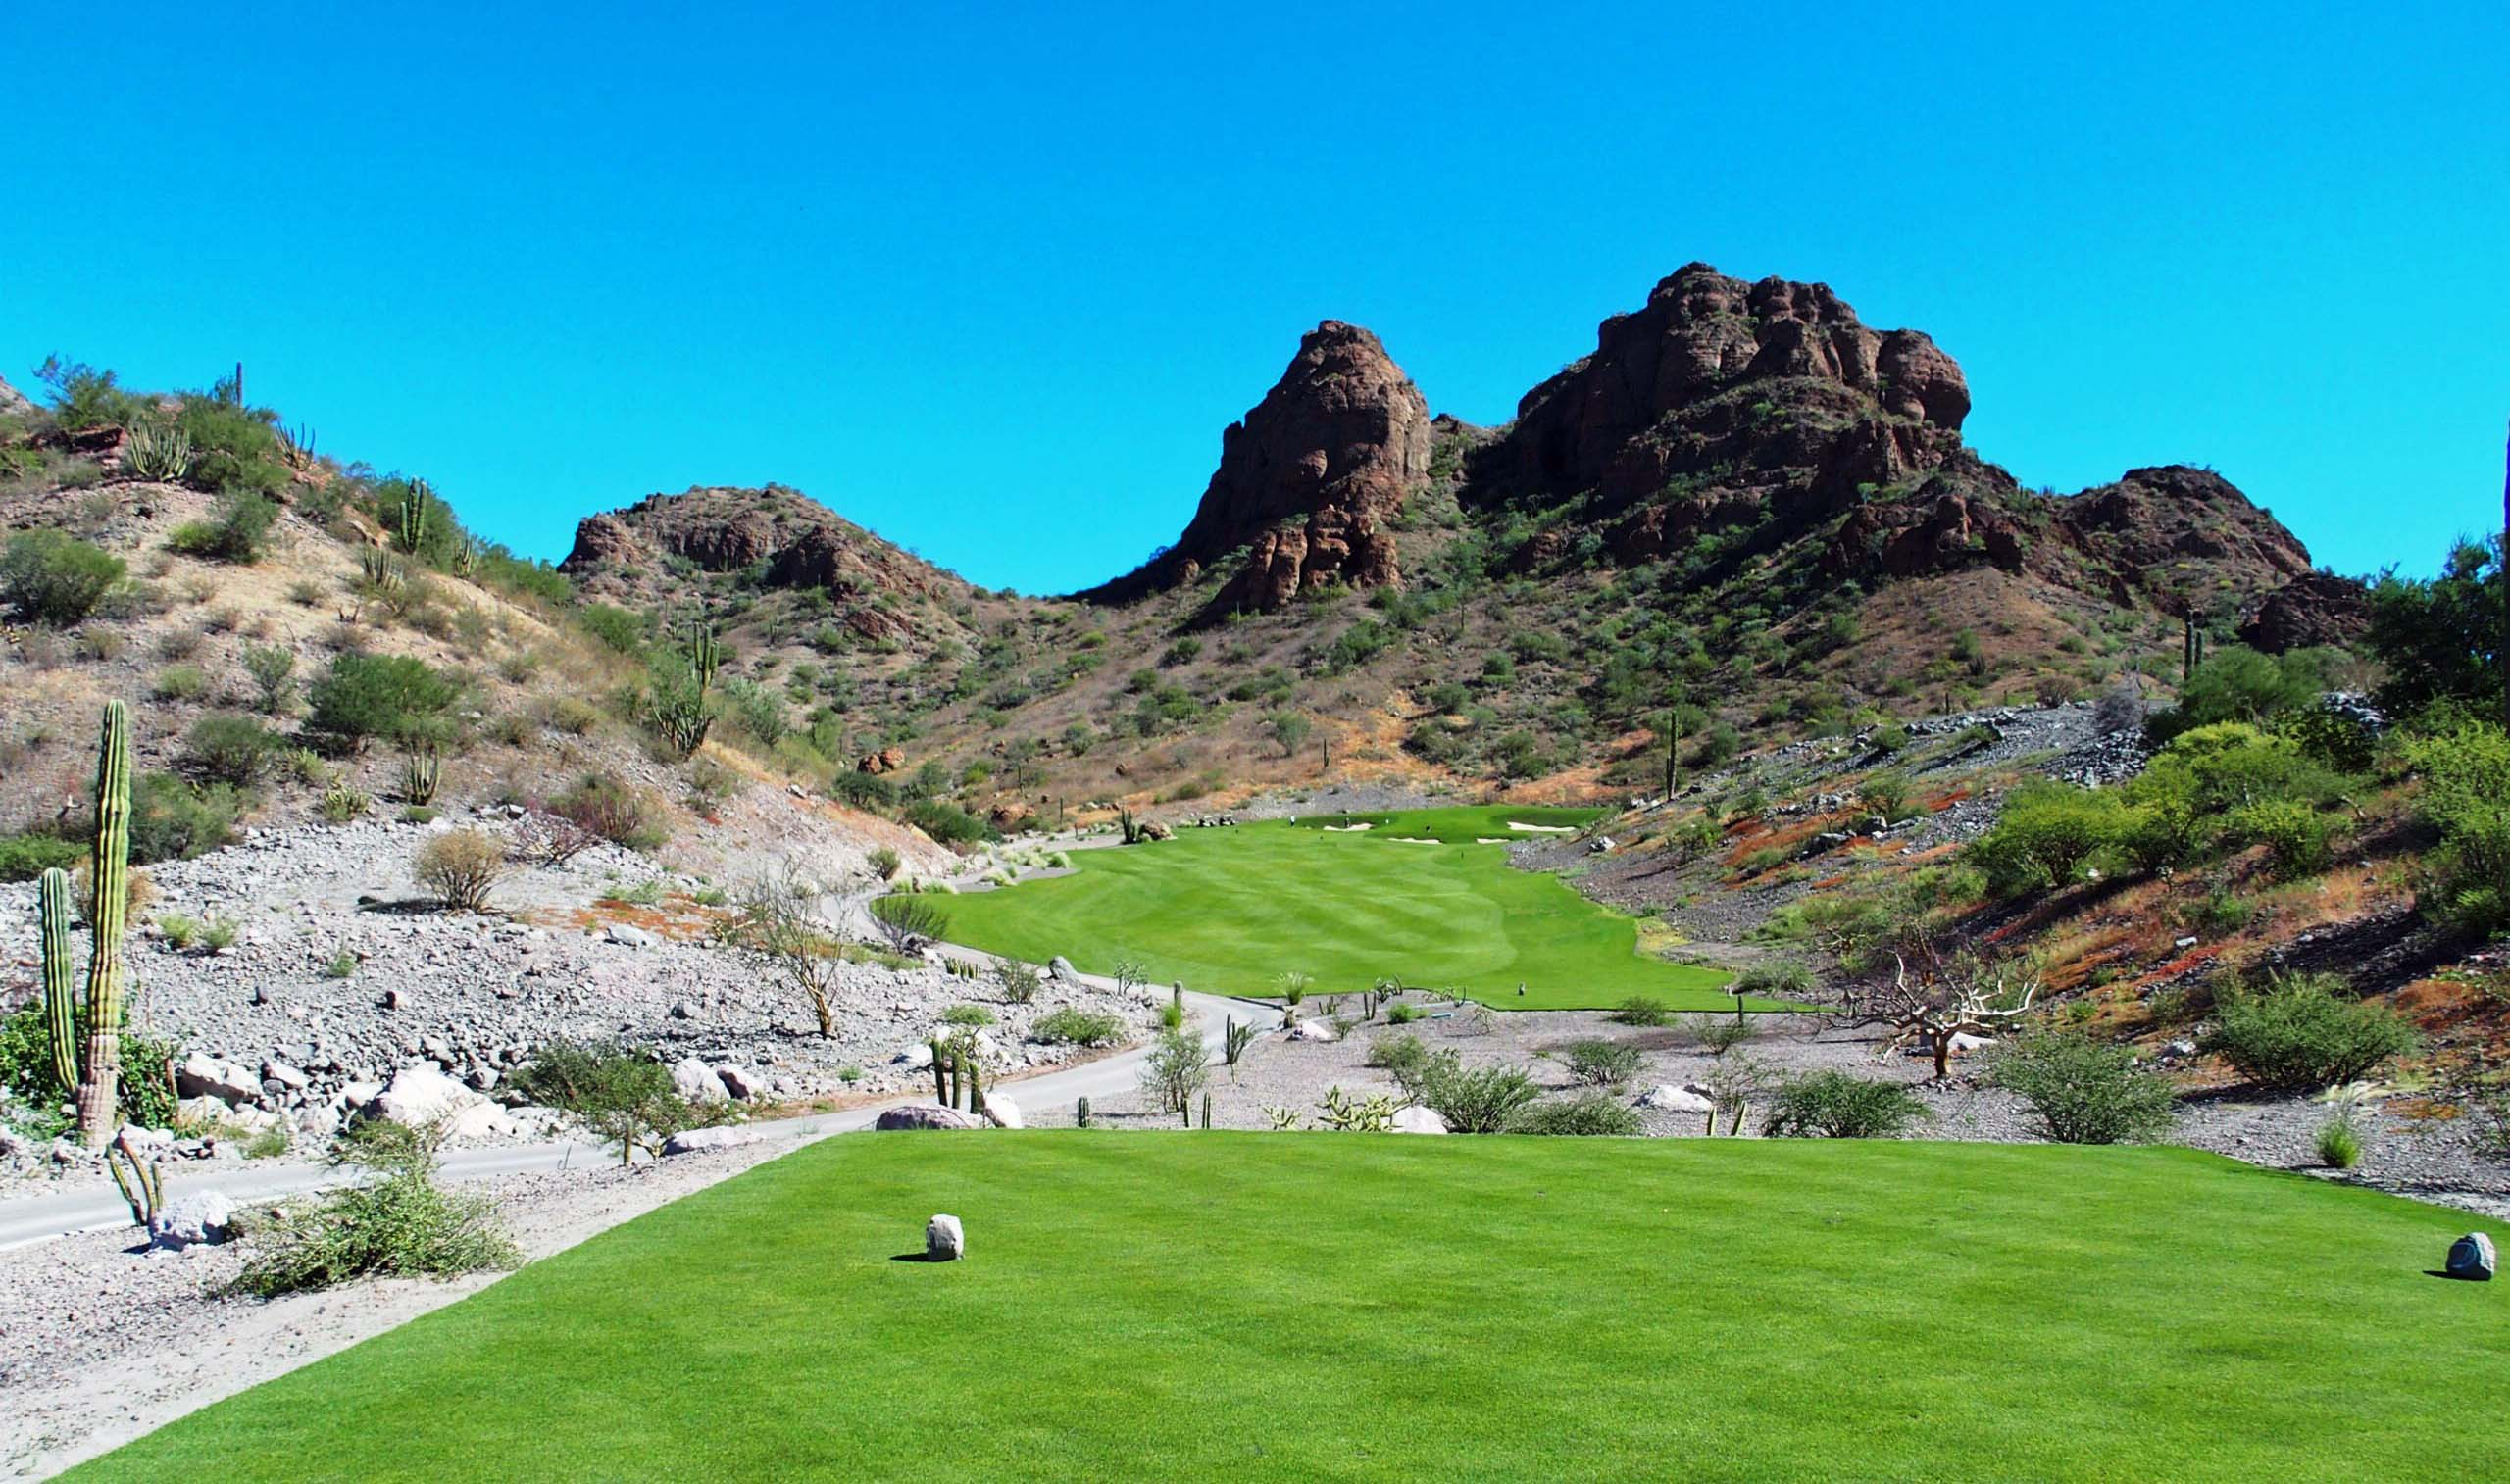 Danzante Bay Golf Club's Sierra de La Giganta Mountain Views